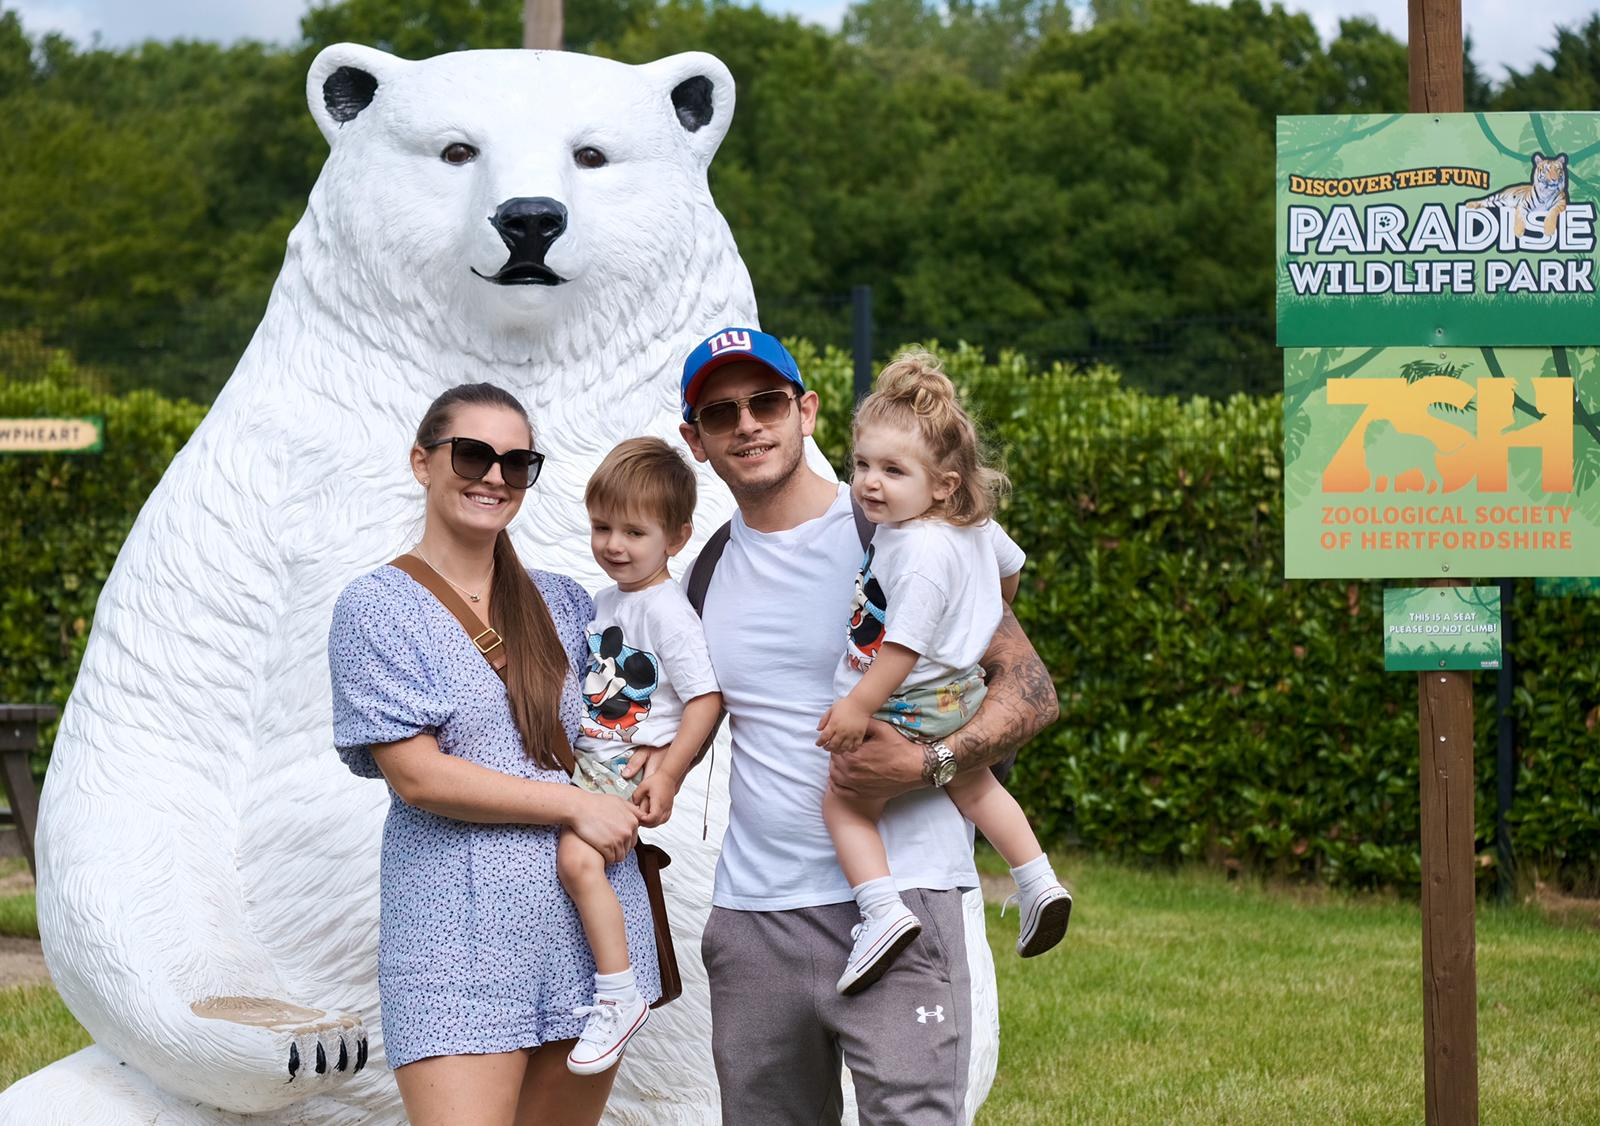 Paradise Wildlife Park is open to the public